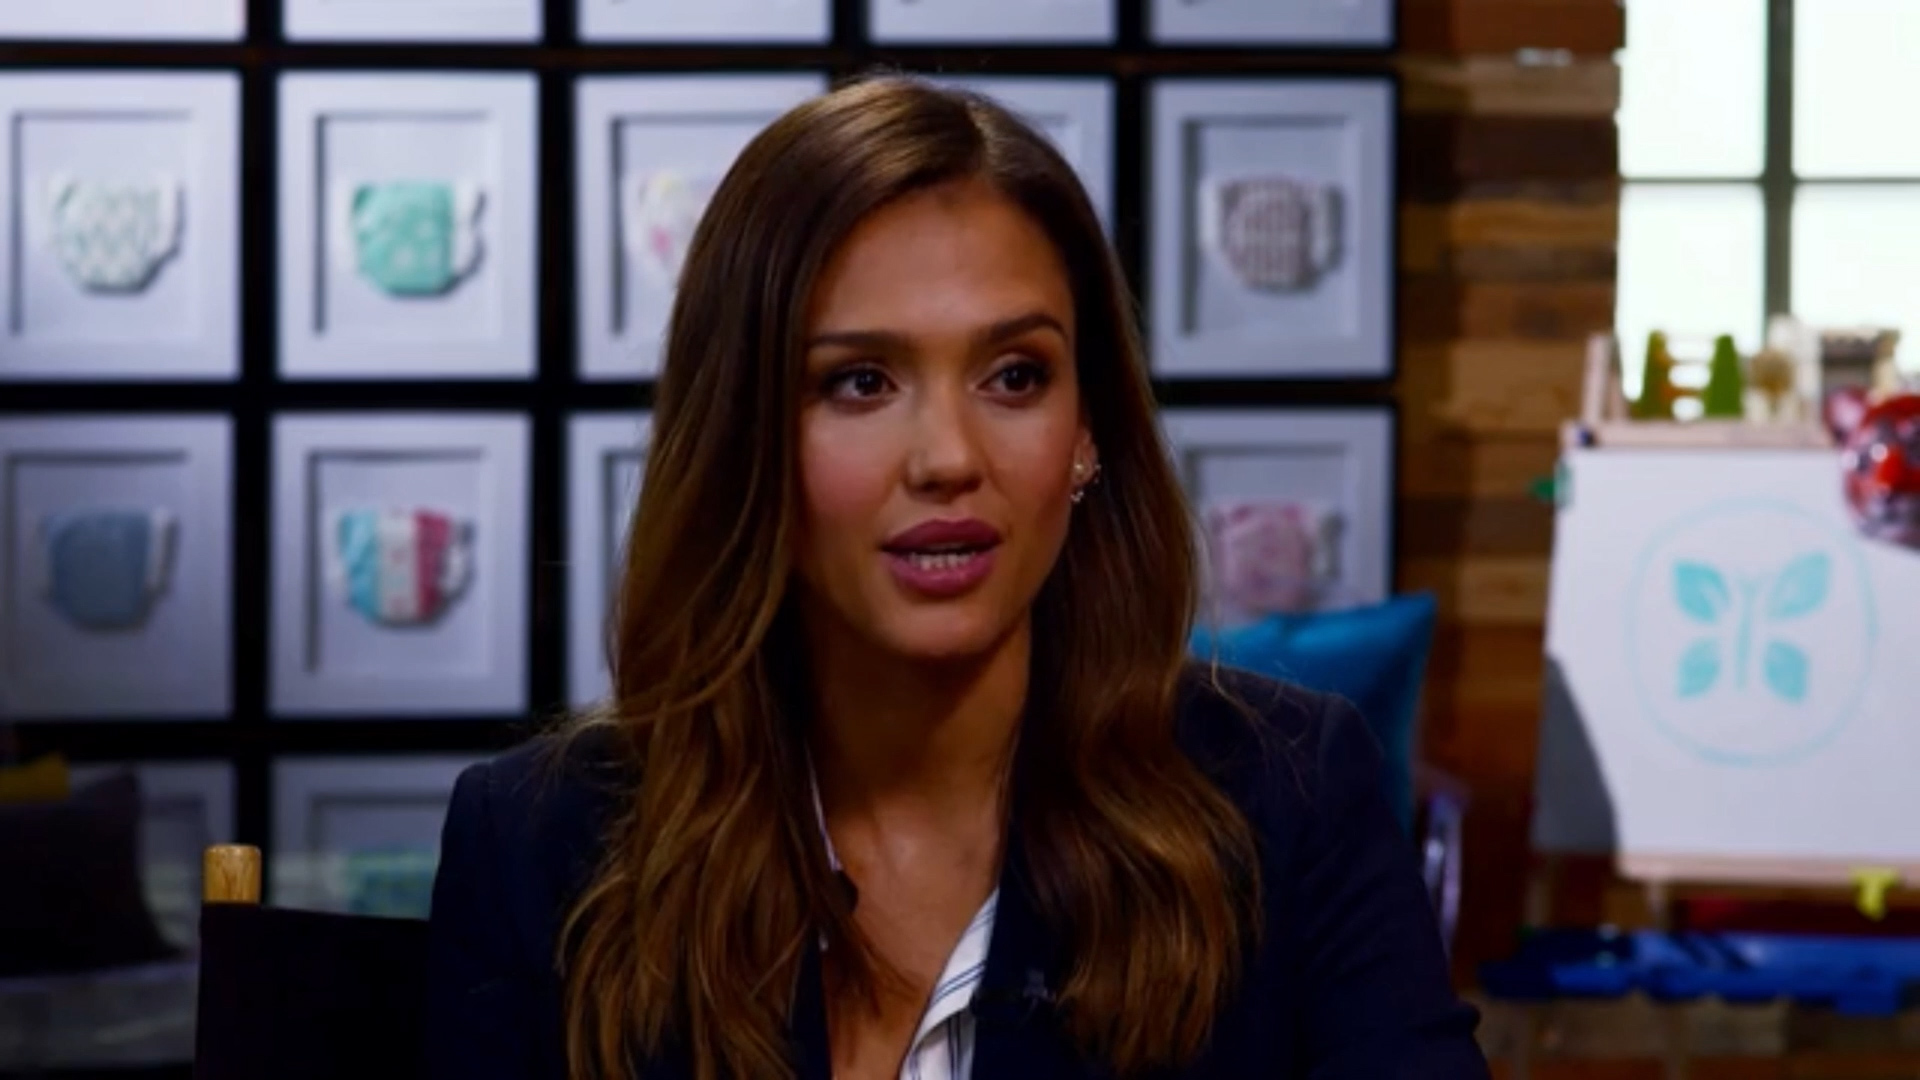 Jessica Alba opens up about her brand The Honest Company